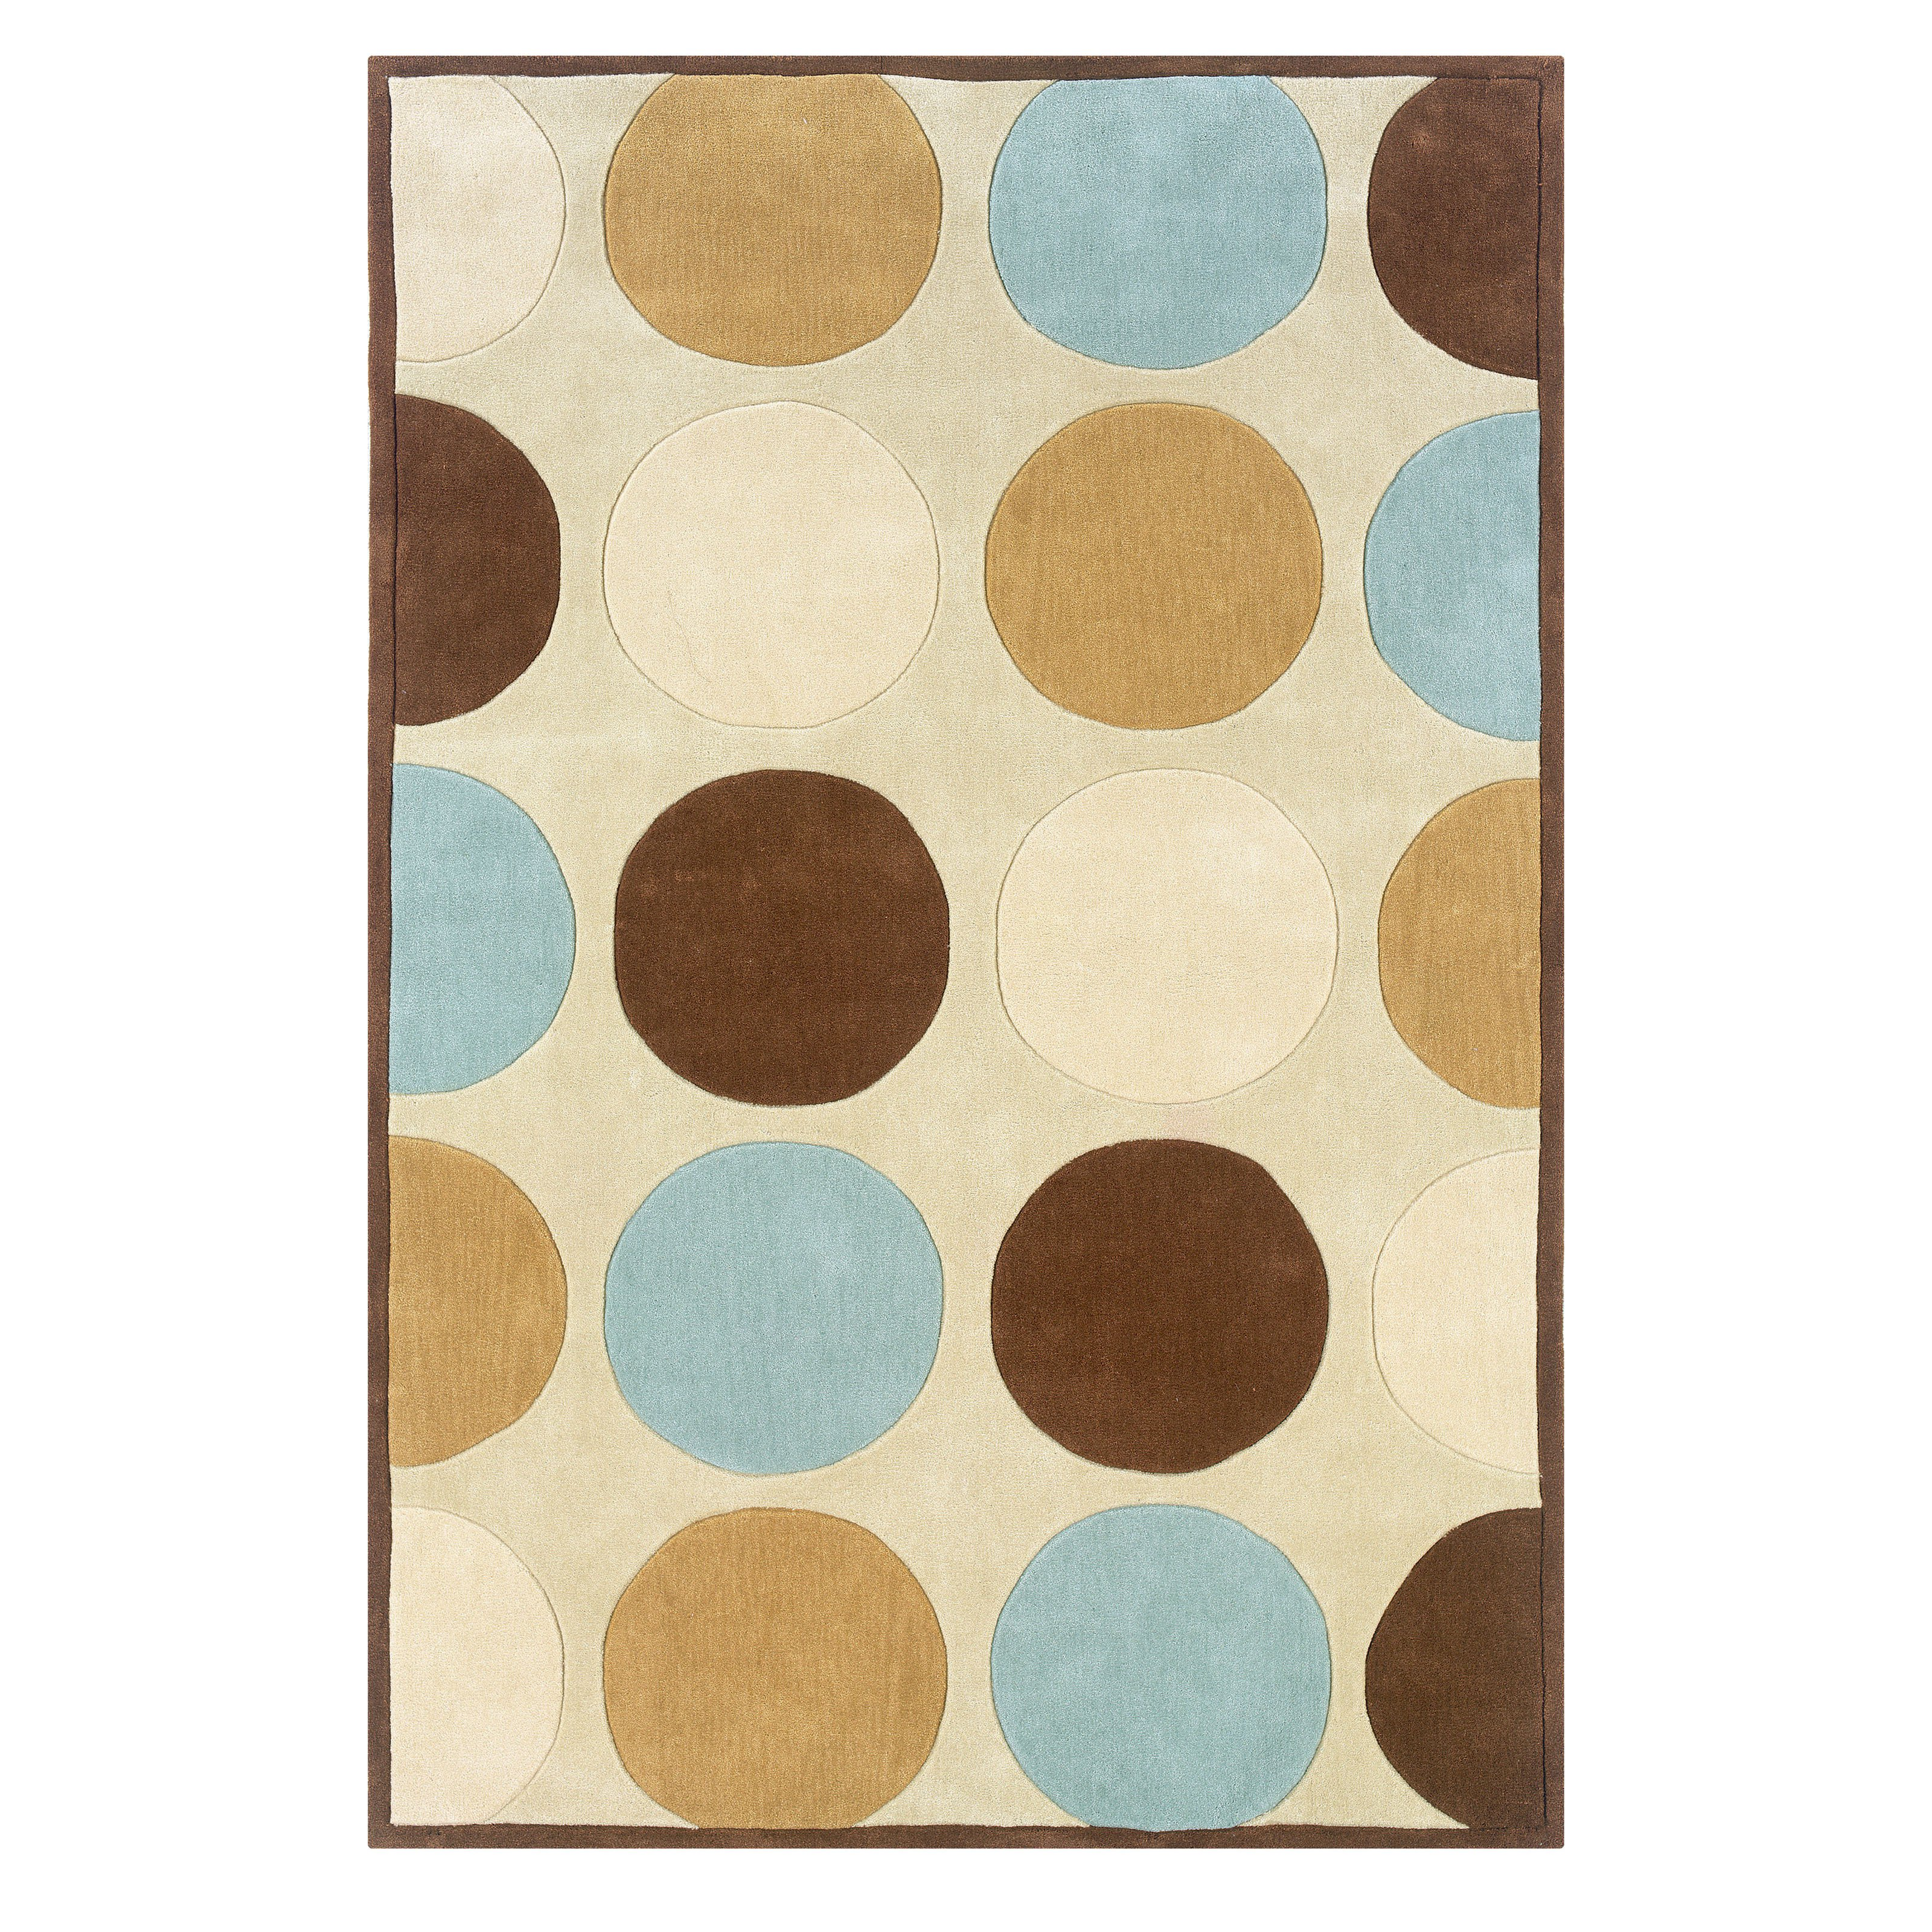 Rectangular Area Rug (2 ft. 10 in. L x 1 ft. 10 in. W (4 lbs.))